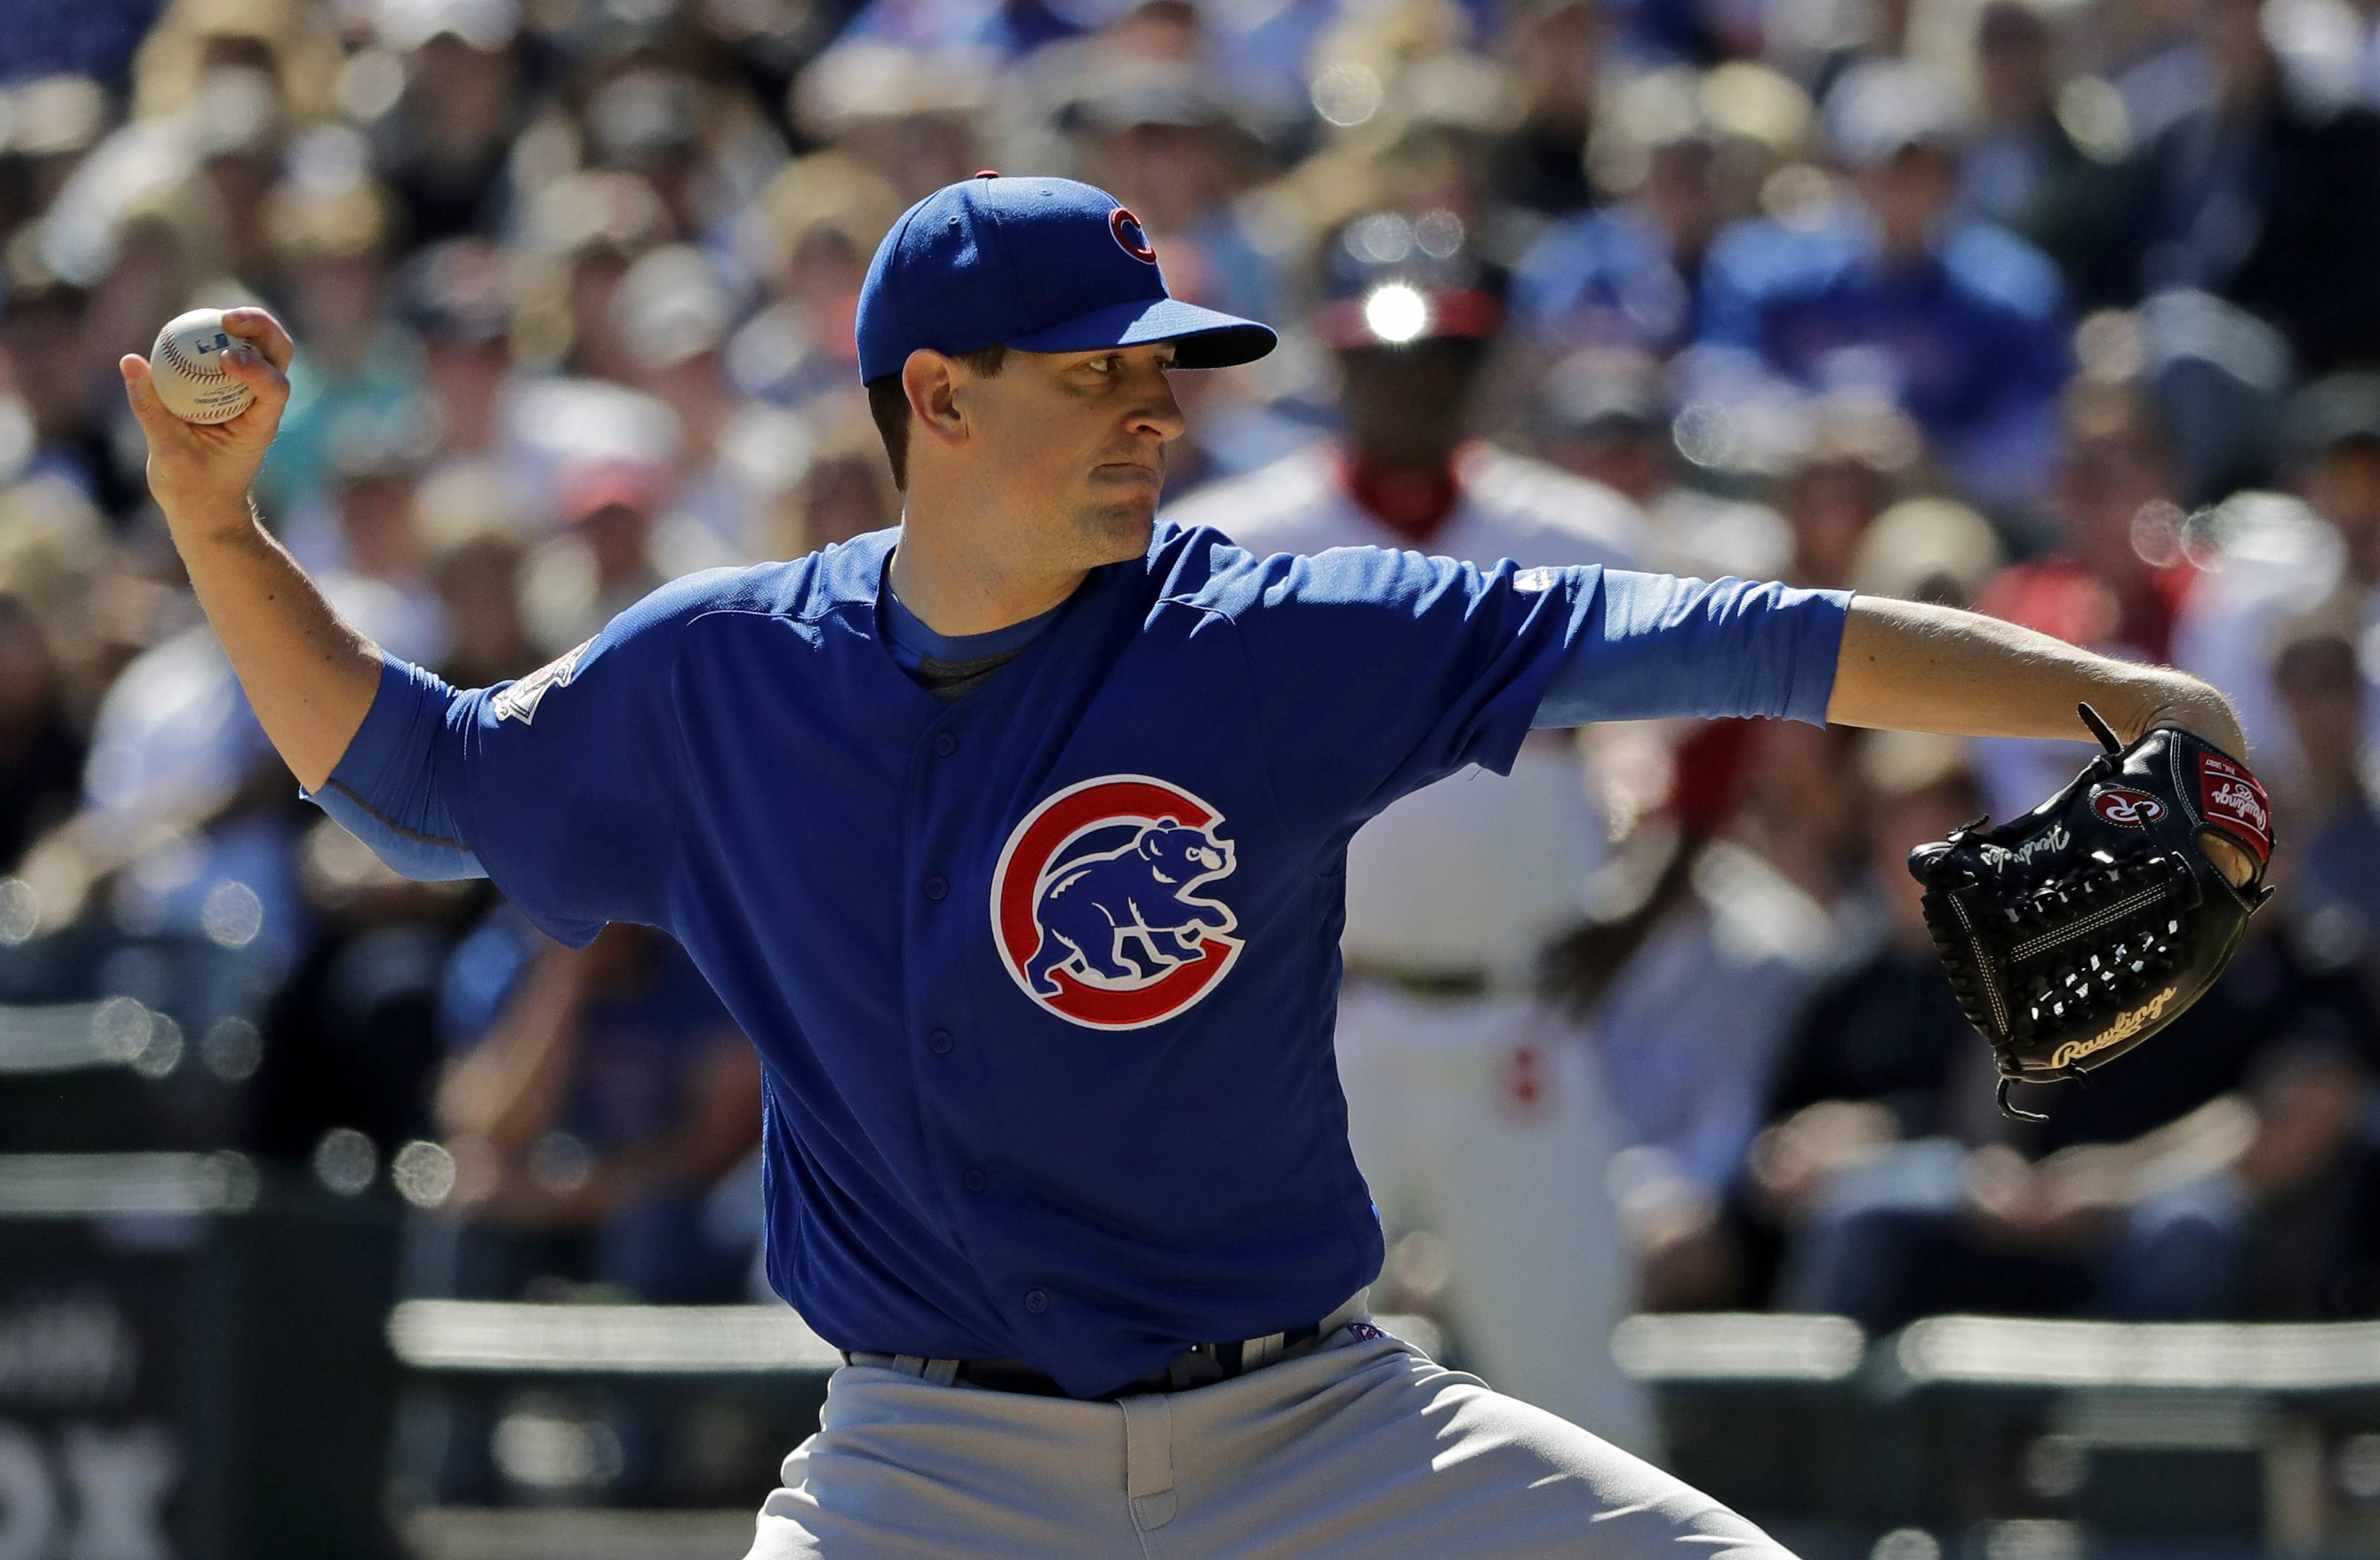 Chicago Cubs starting pitcher Kyle Hendricks throws against the Chicago White Sox during the first inning of a baseball game Sunday, Sept. 23, 2018, in Chicago. (AP Photo/Nam Y. Huh)